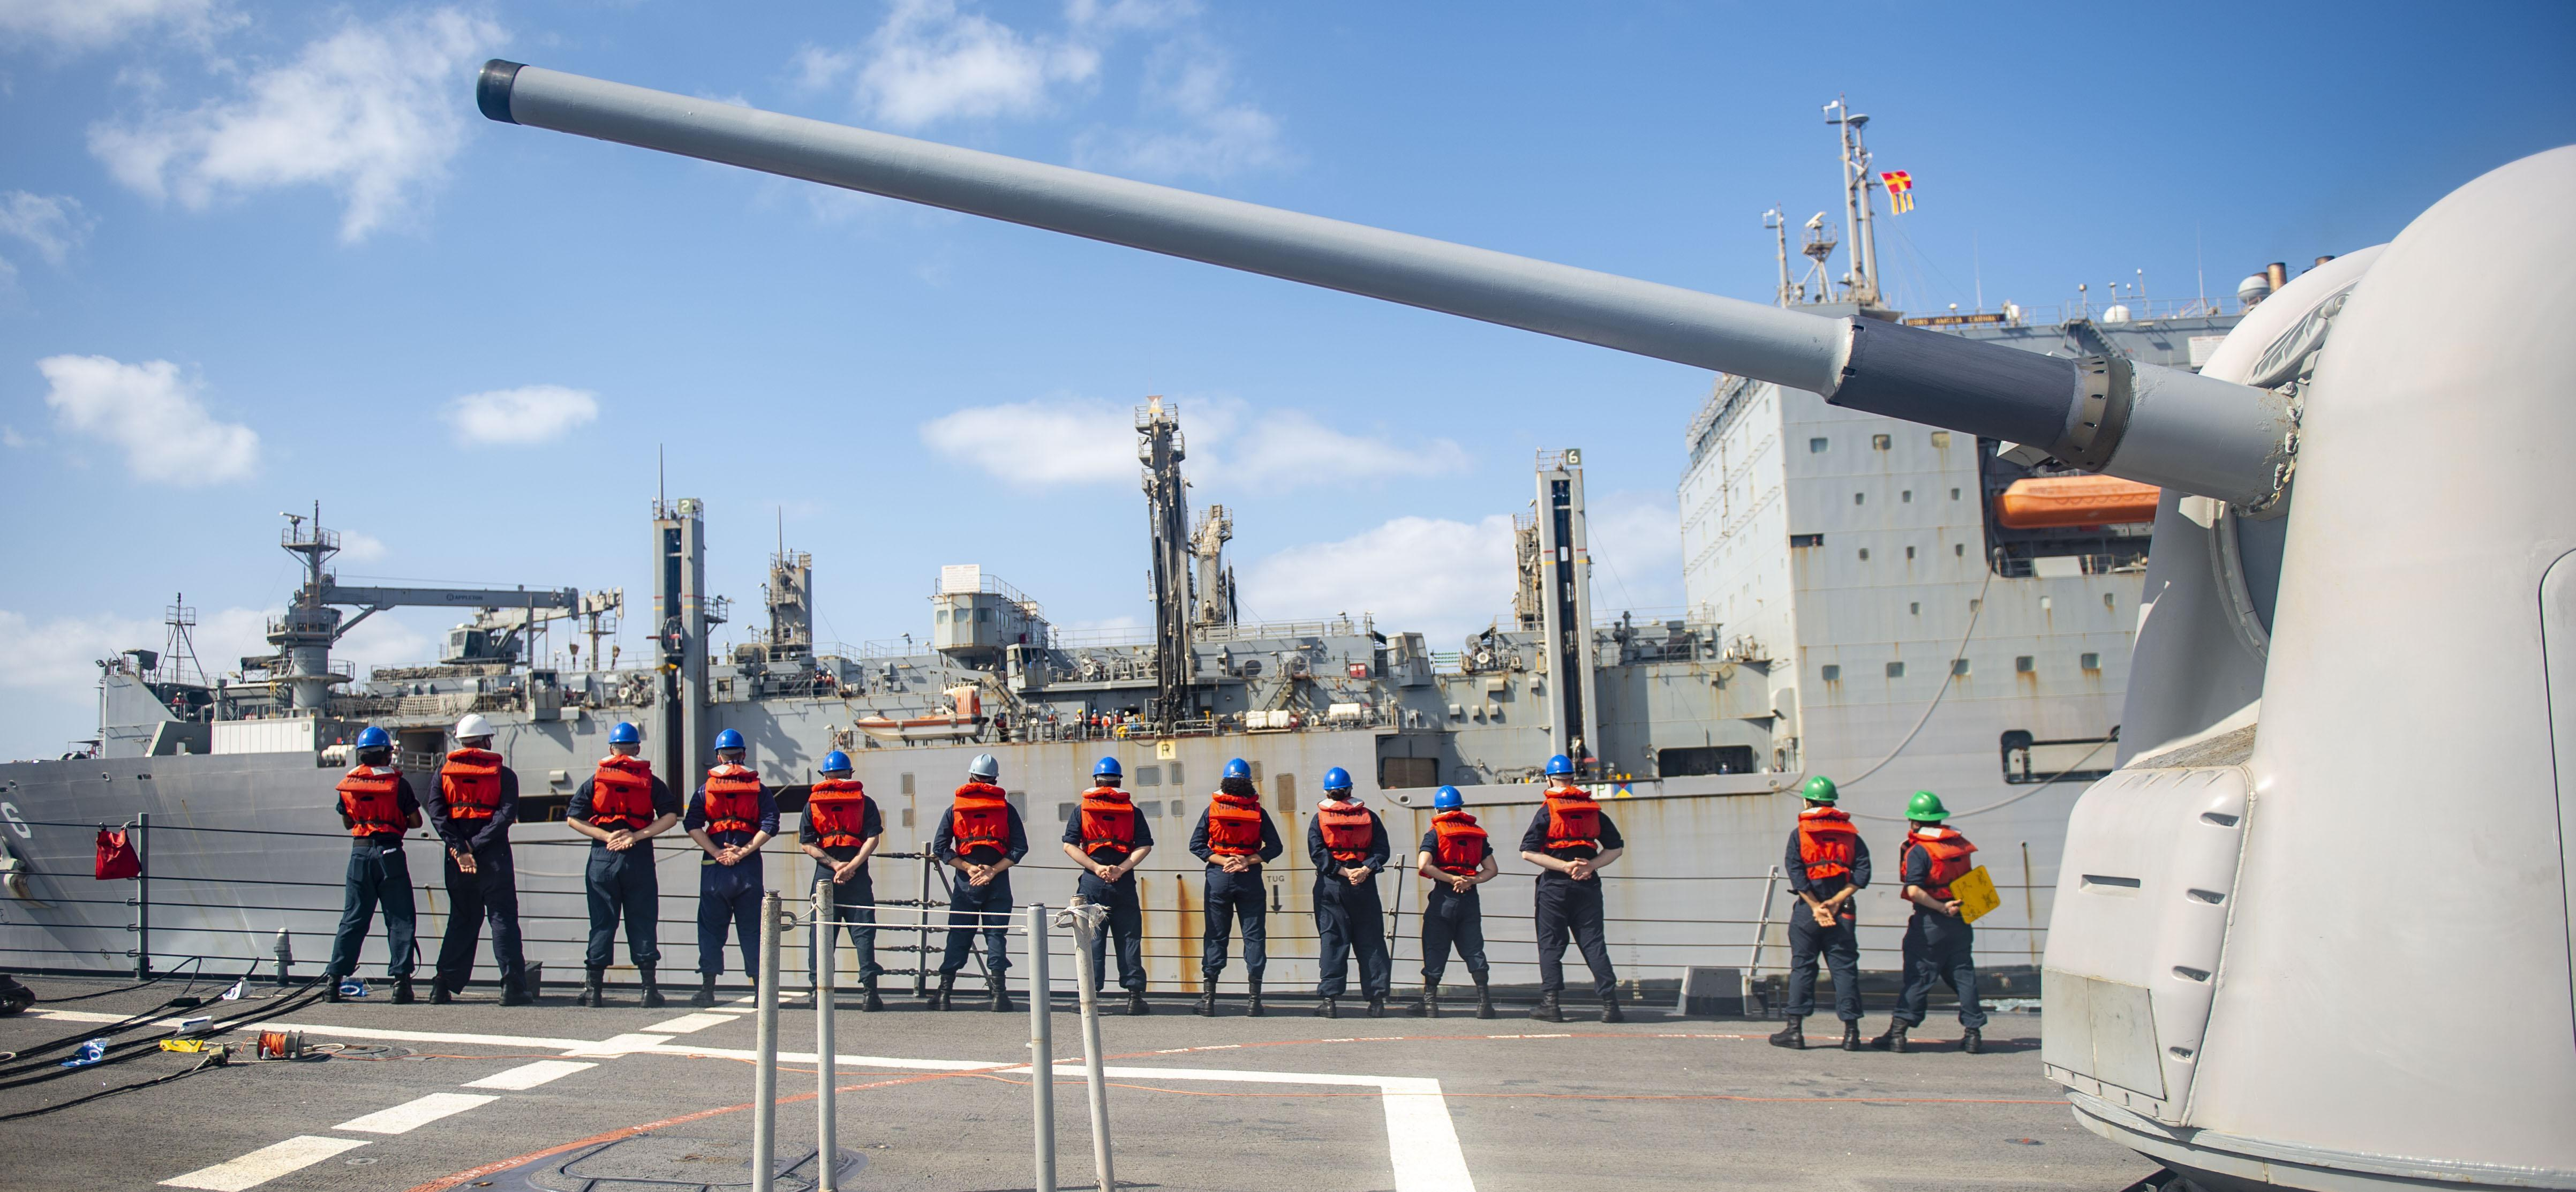 Sailors aboard USS John Paul Jones (DDG 53) stand in formation during a replenishment-at-sea with USNS Amelia Earhart (T-AKE 6) in the Indian Ocean.